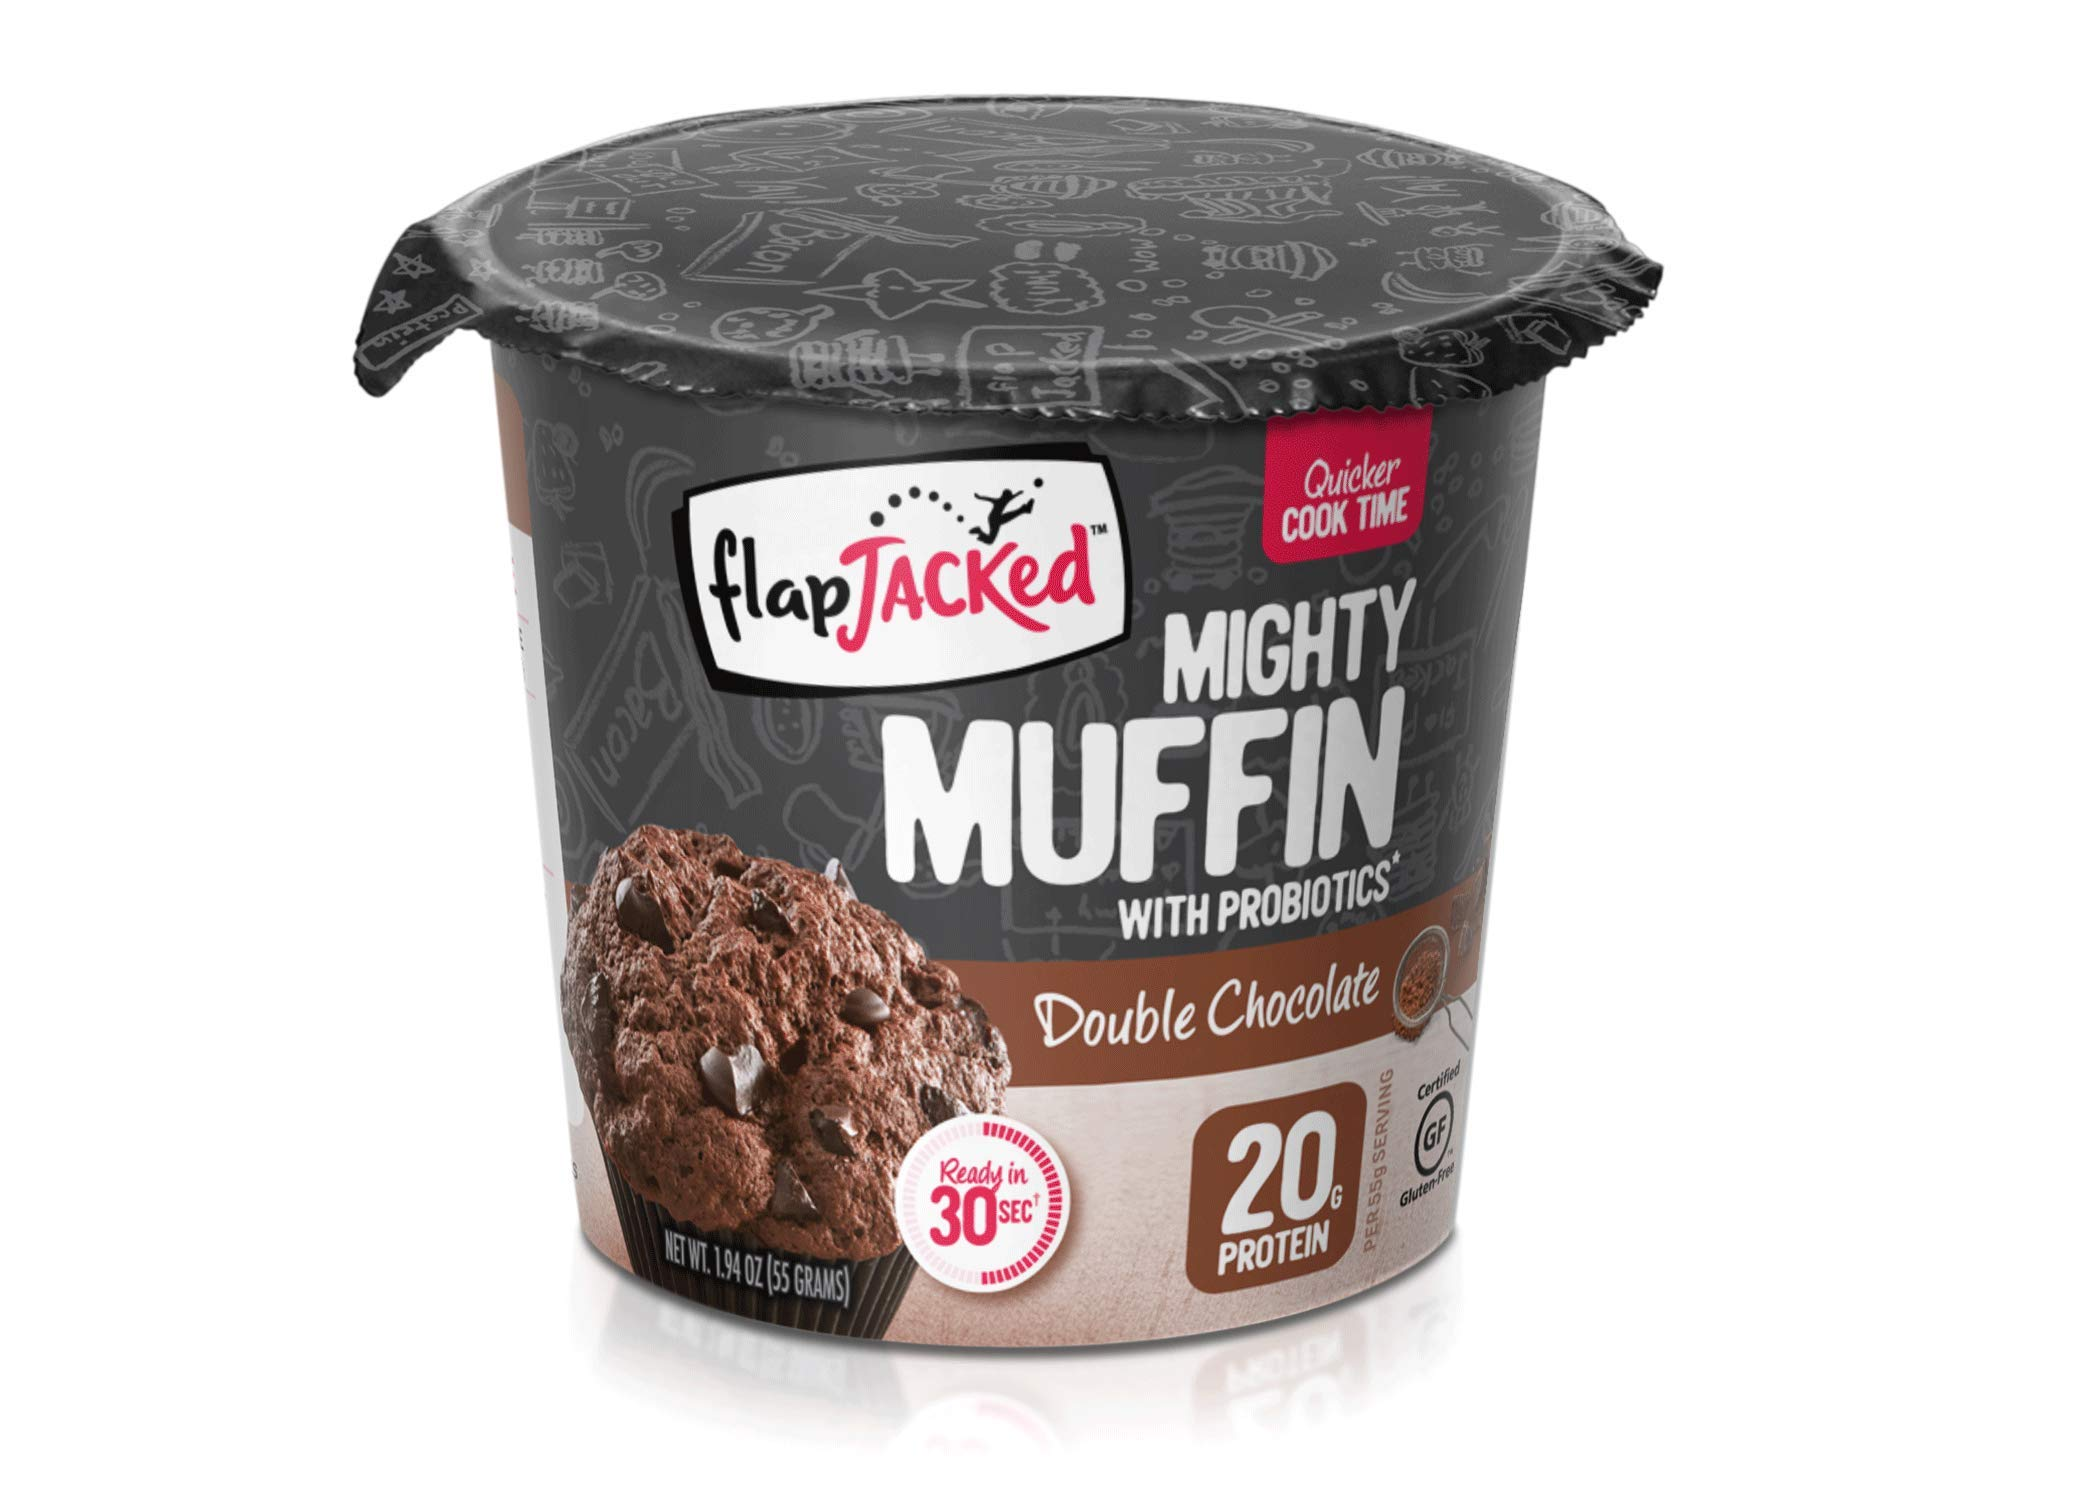 FlapJacked Mighty Muffins, Gluten-Free Double Chocolate, 12 Pack by FlapJacked